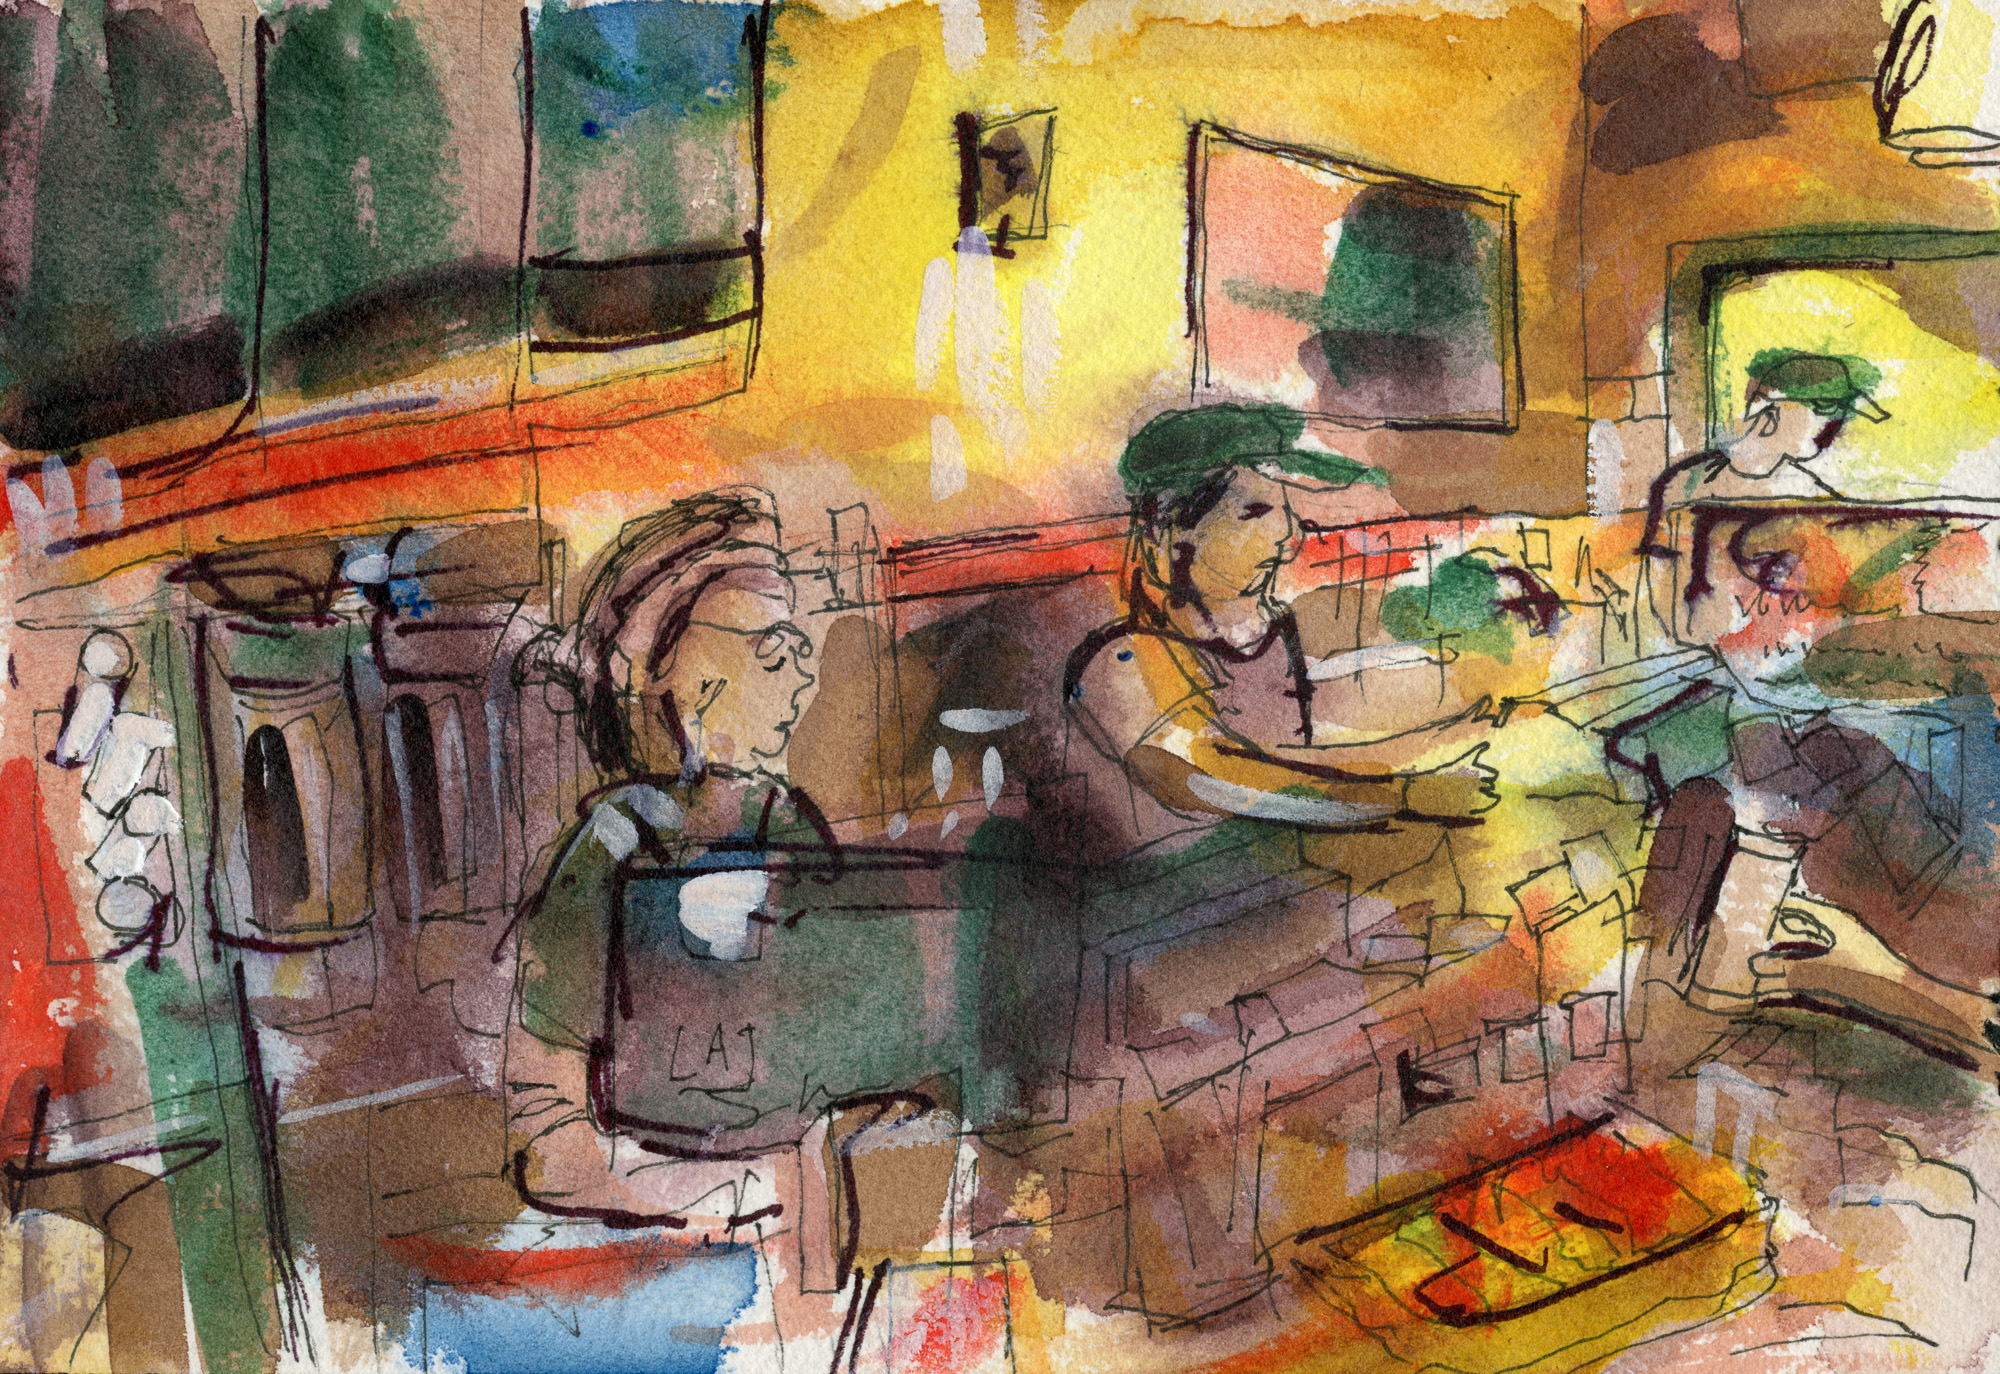 Coffee Shop Scene No. 2 (Morning at Peet's in the Wrigley Building)